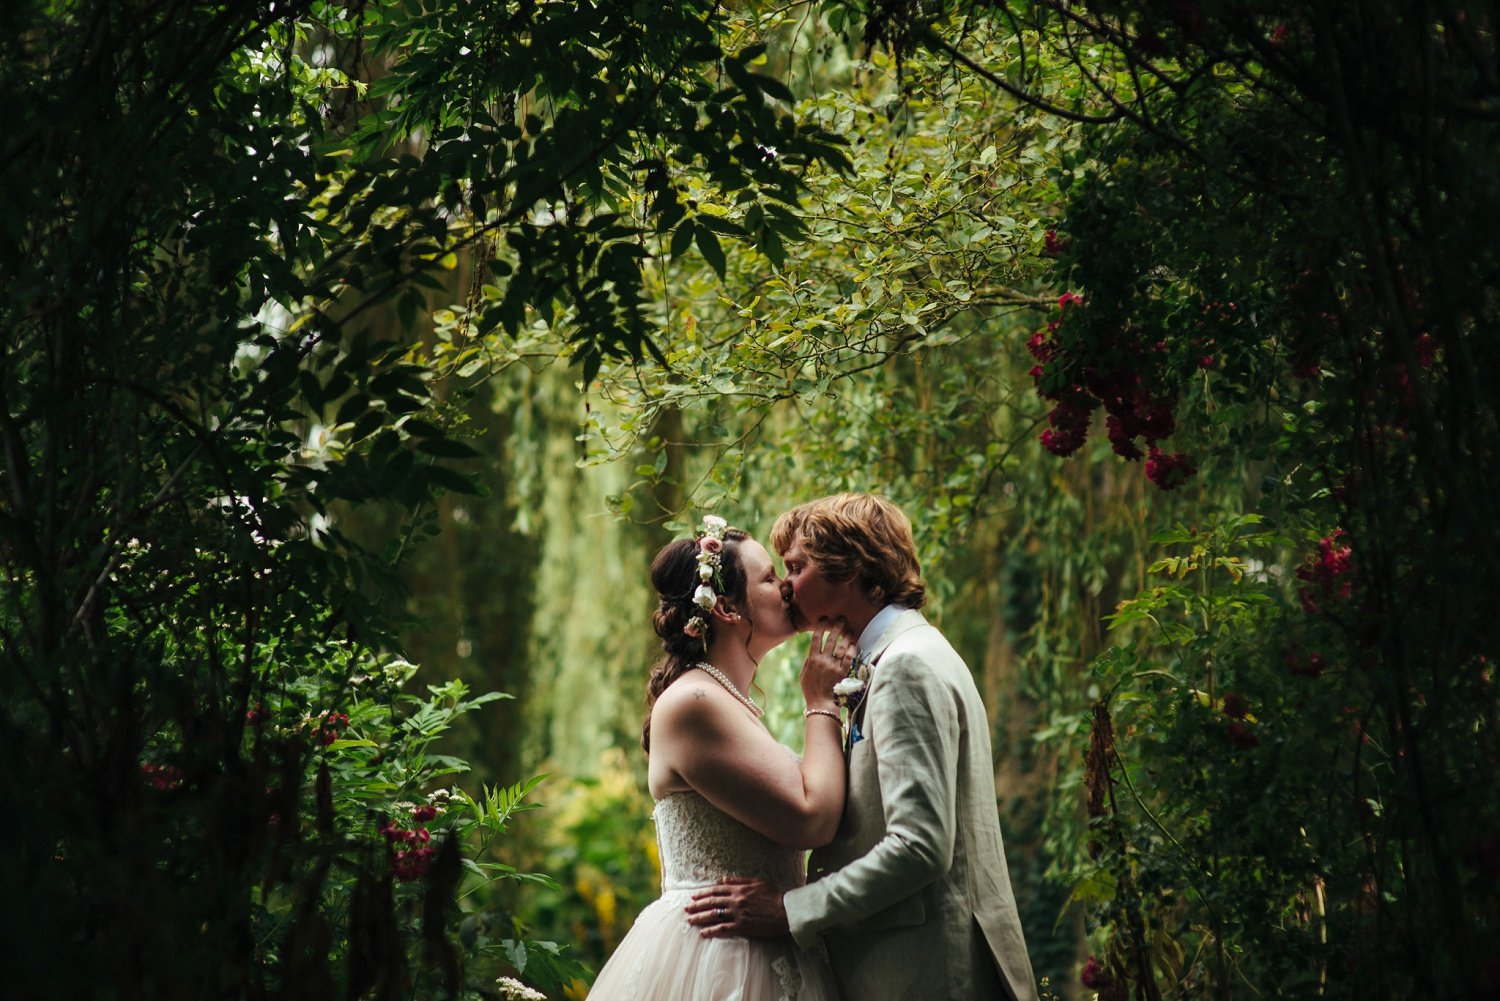 Bride and groom kidding surrounded by lots of greenery at Westonbury Mill Water Gardens